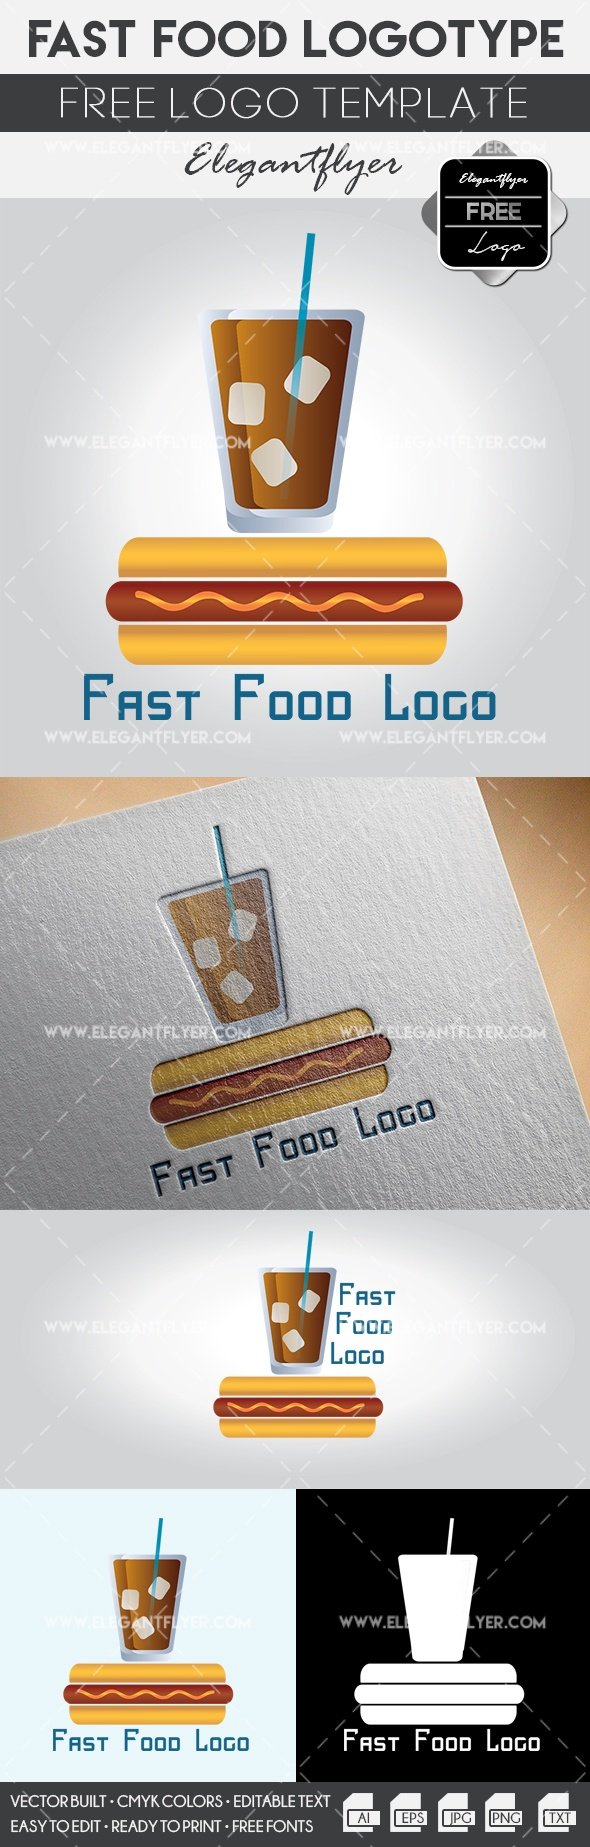 Fast Food – Free Logo Templates